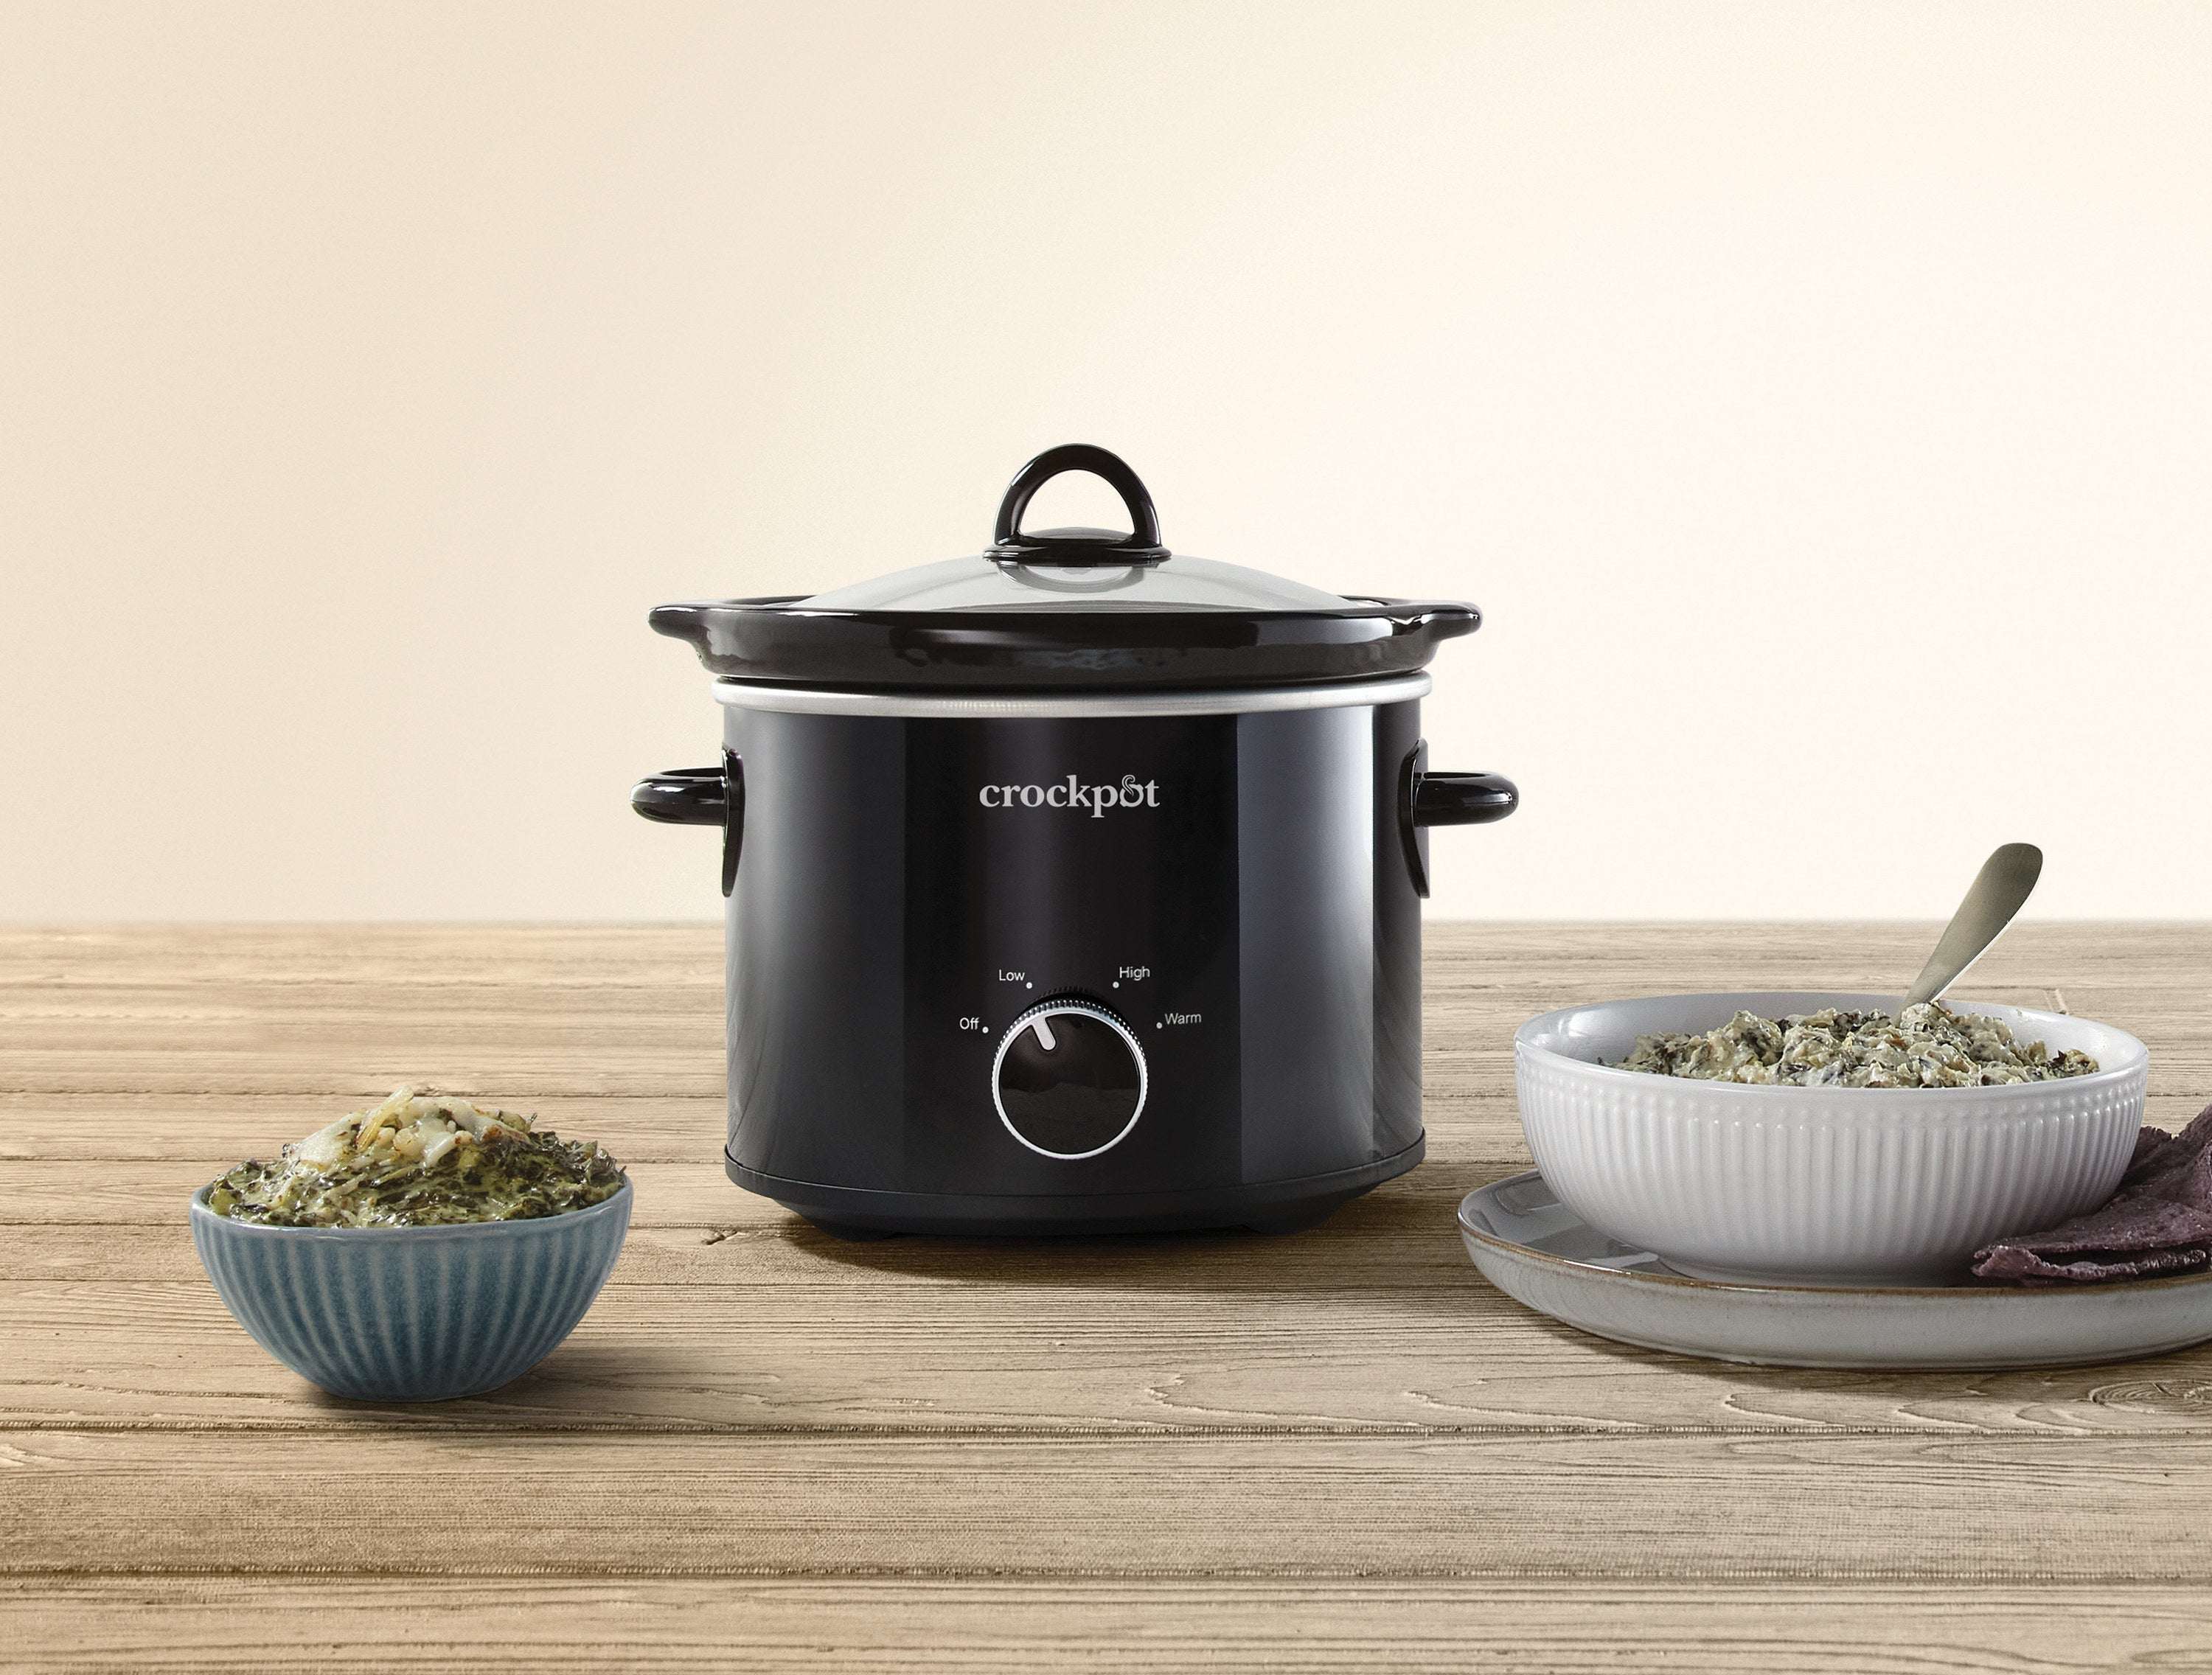 The mini slow cooker